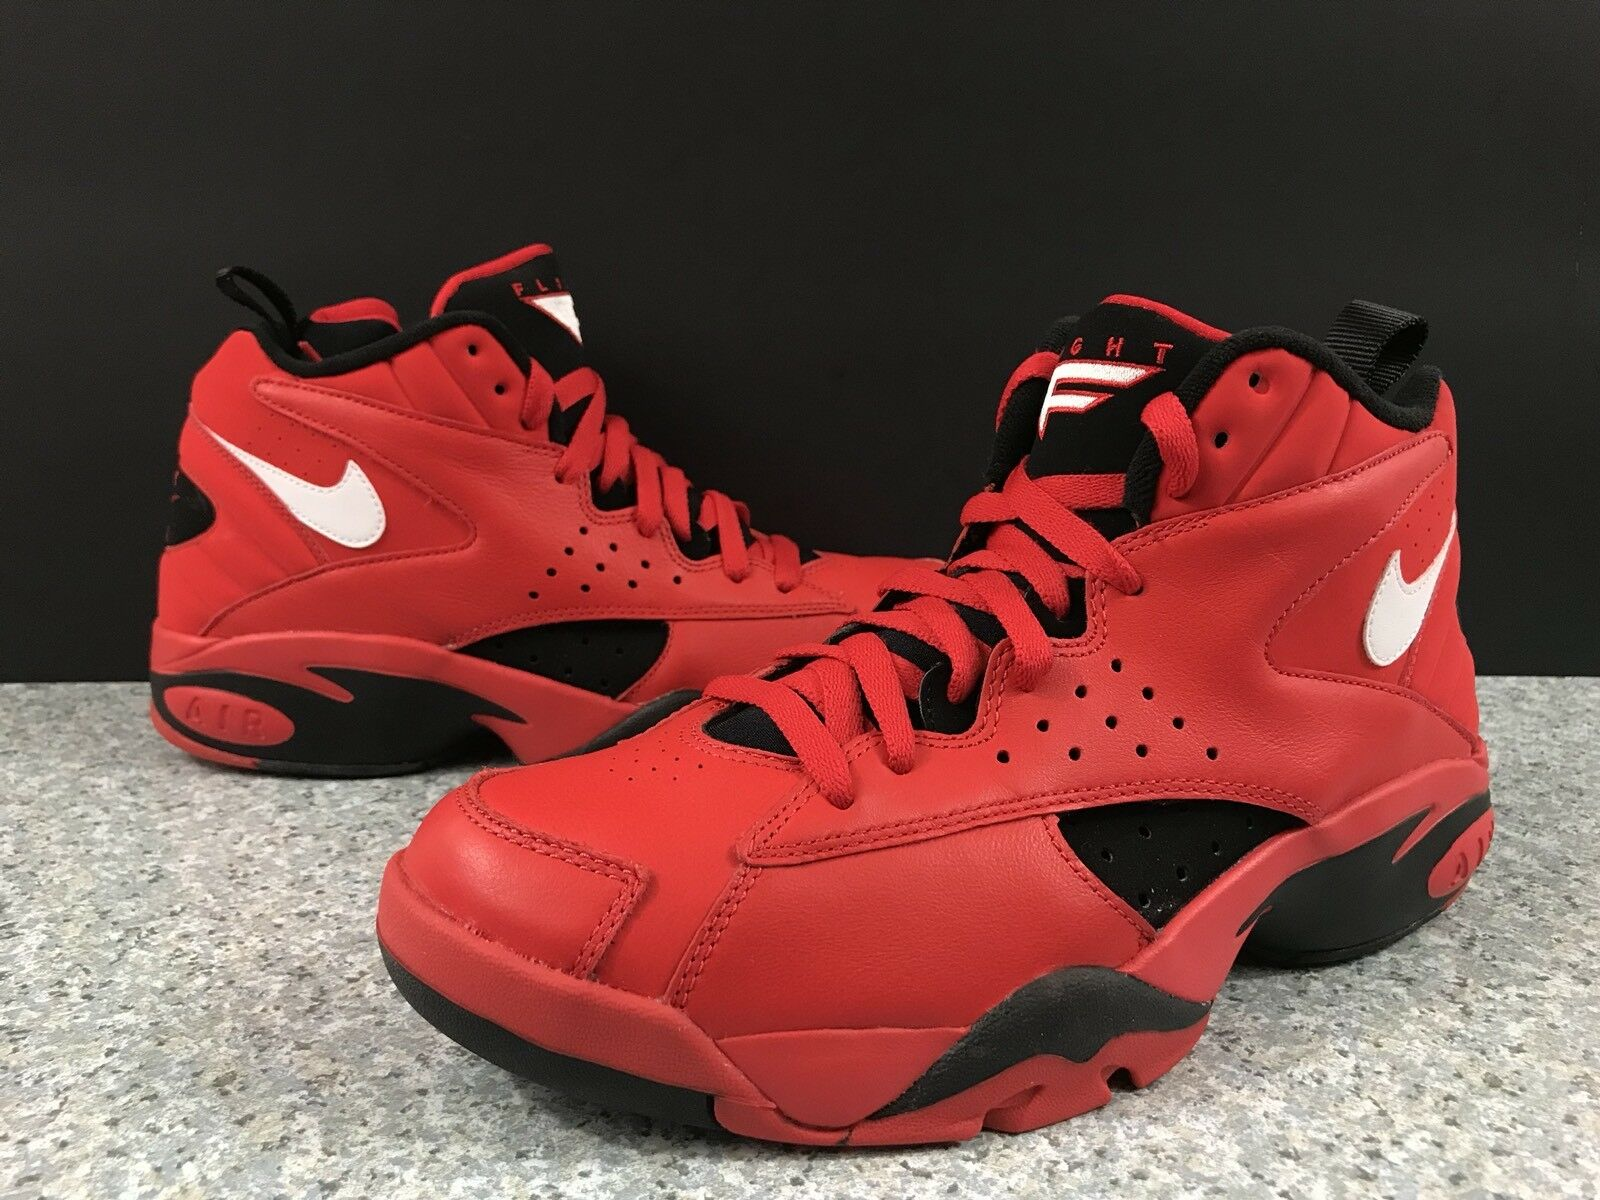 Nike Air Maestro 2 II QS Men's University Red Trifecta Black AJ9281 600 Sz 10